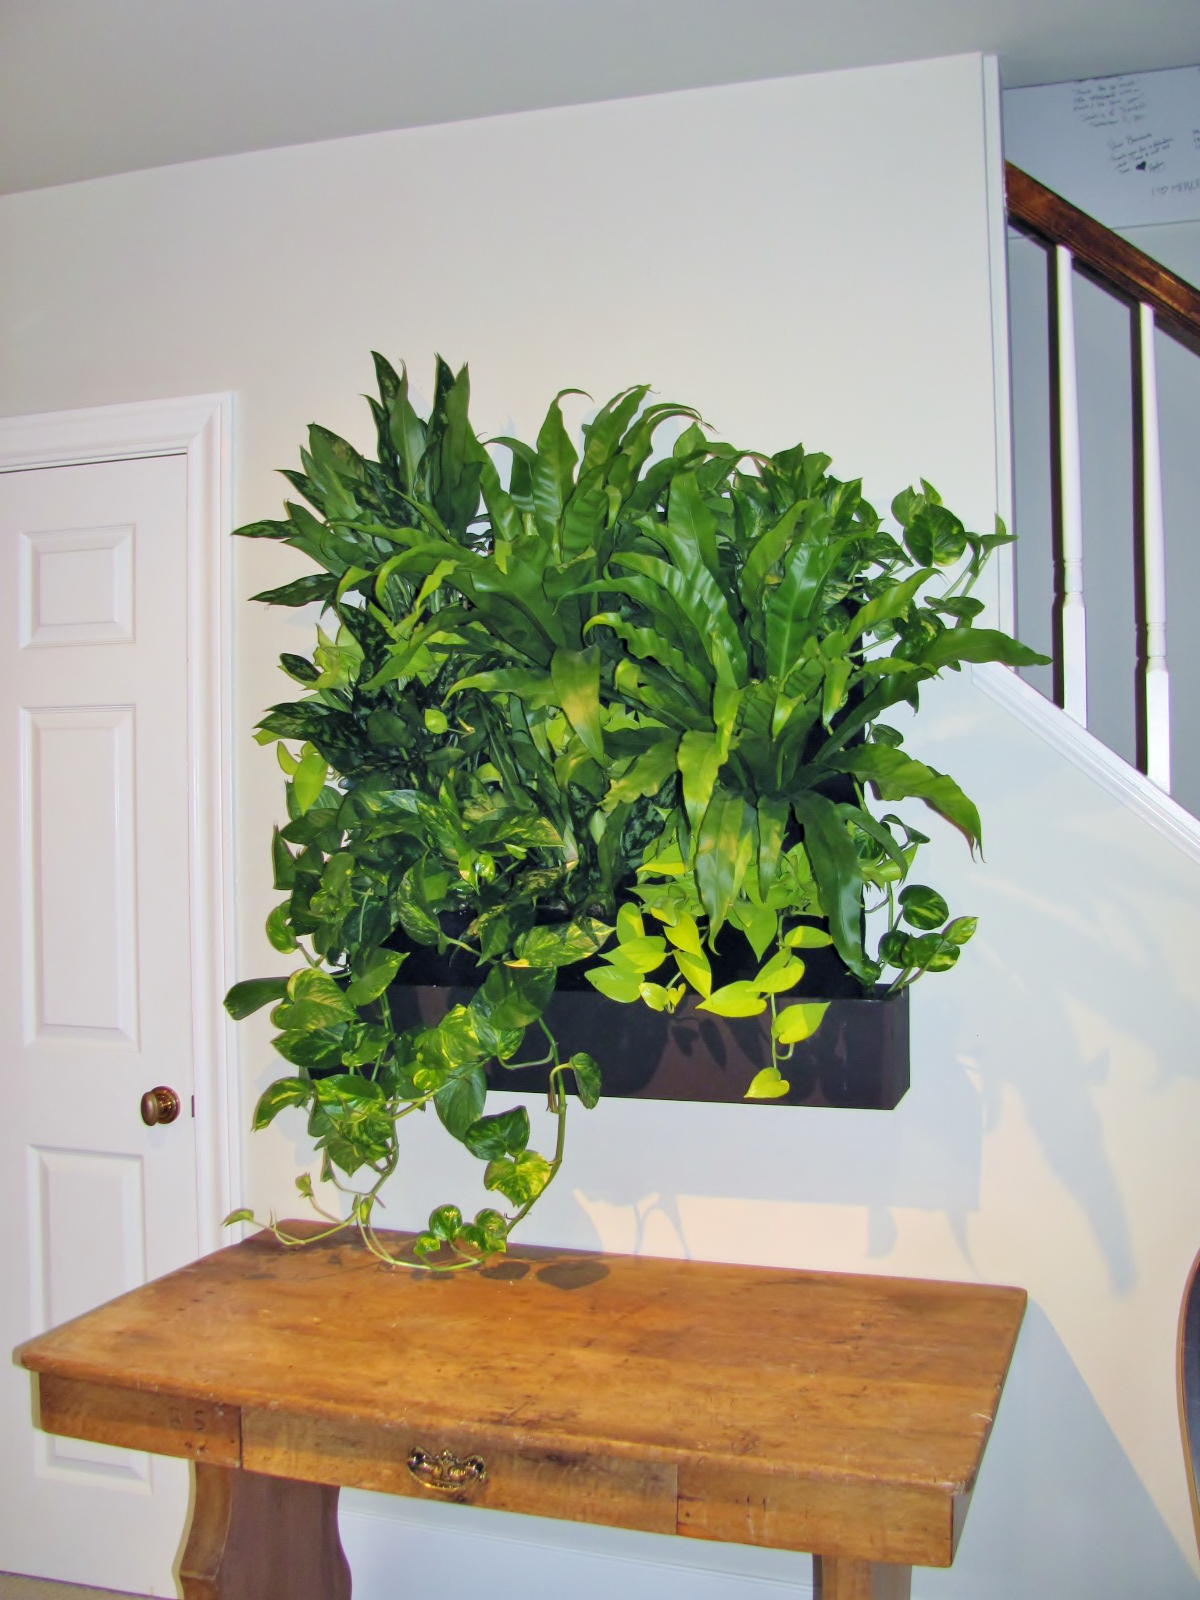 Large Living Wall Kit WITH Tropical Plants